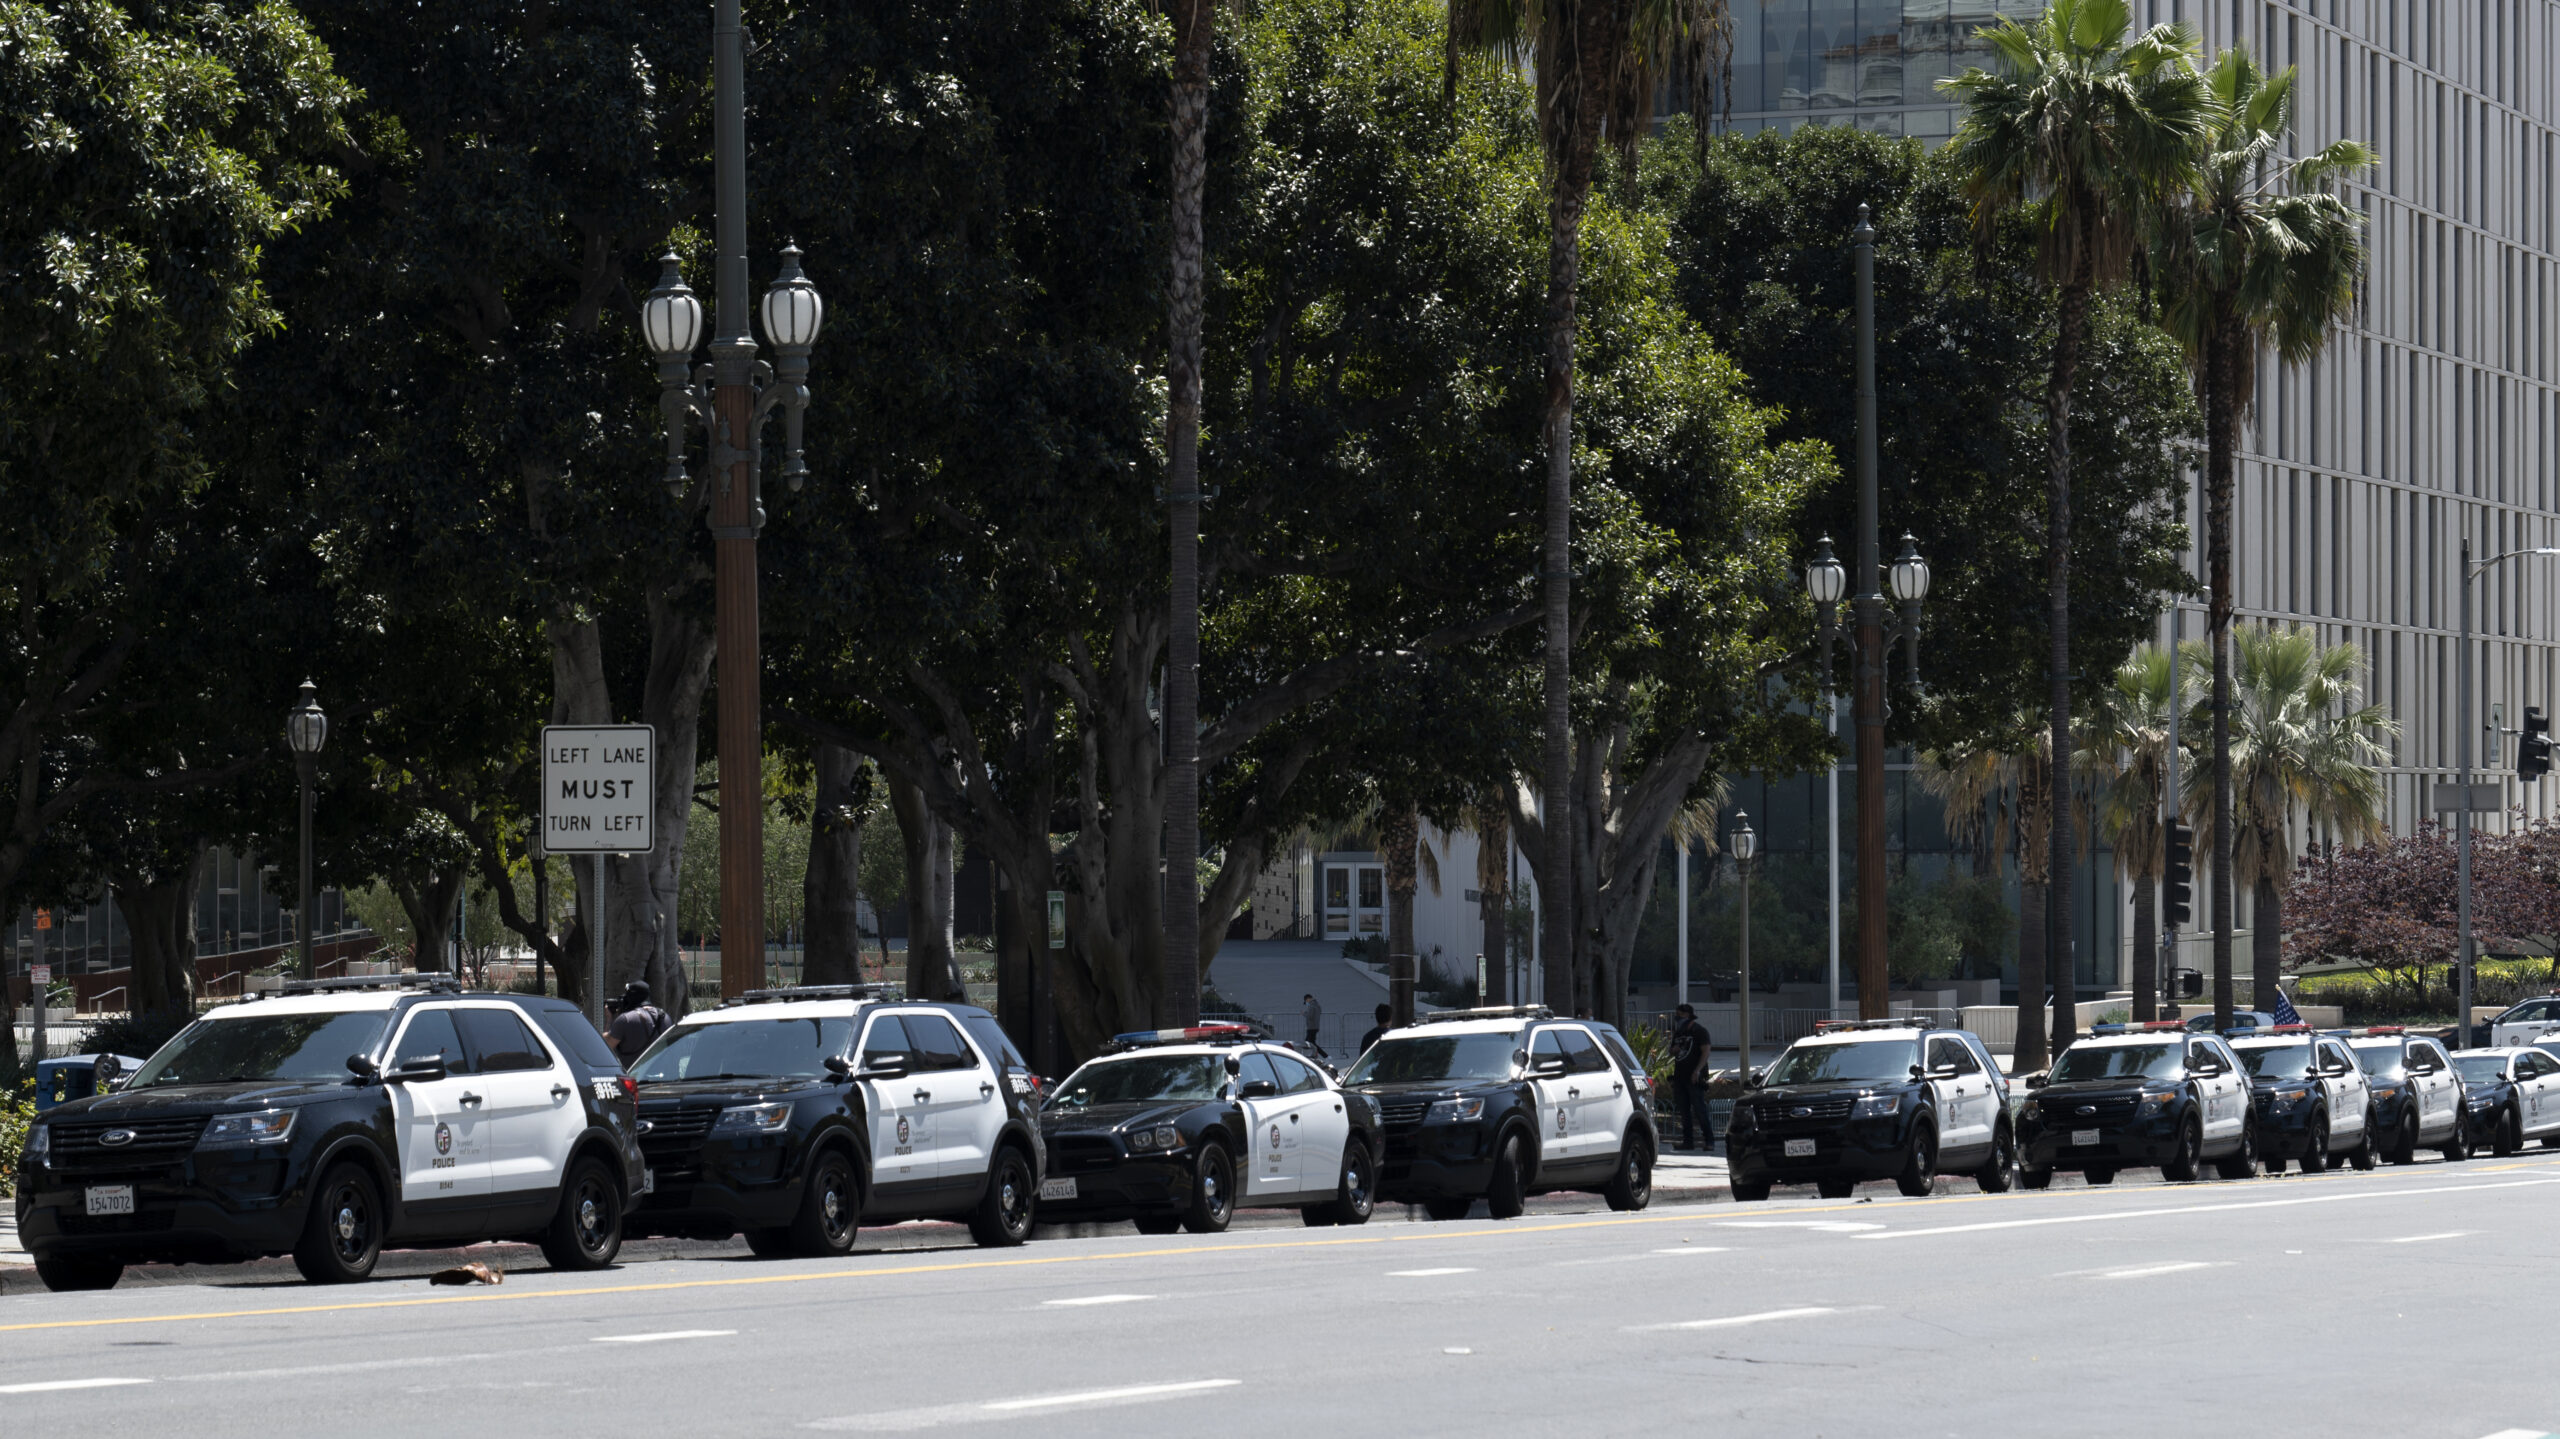 LAPD police cars